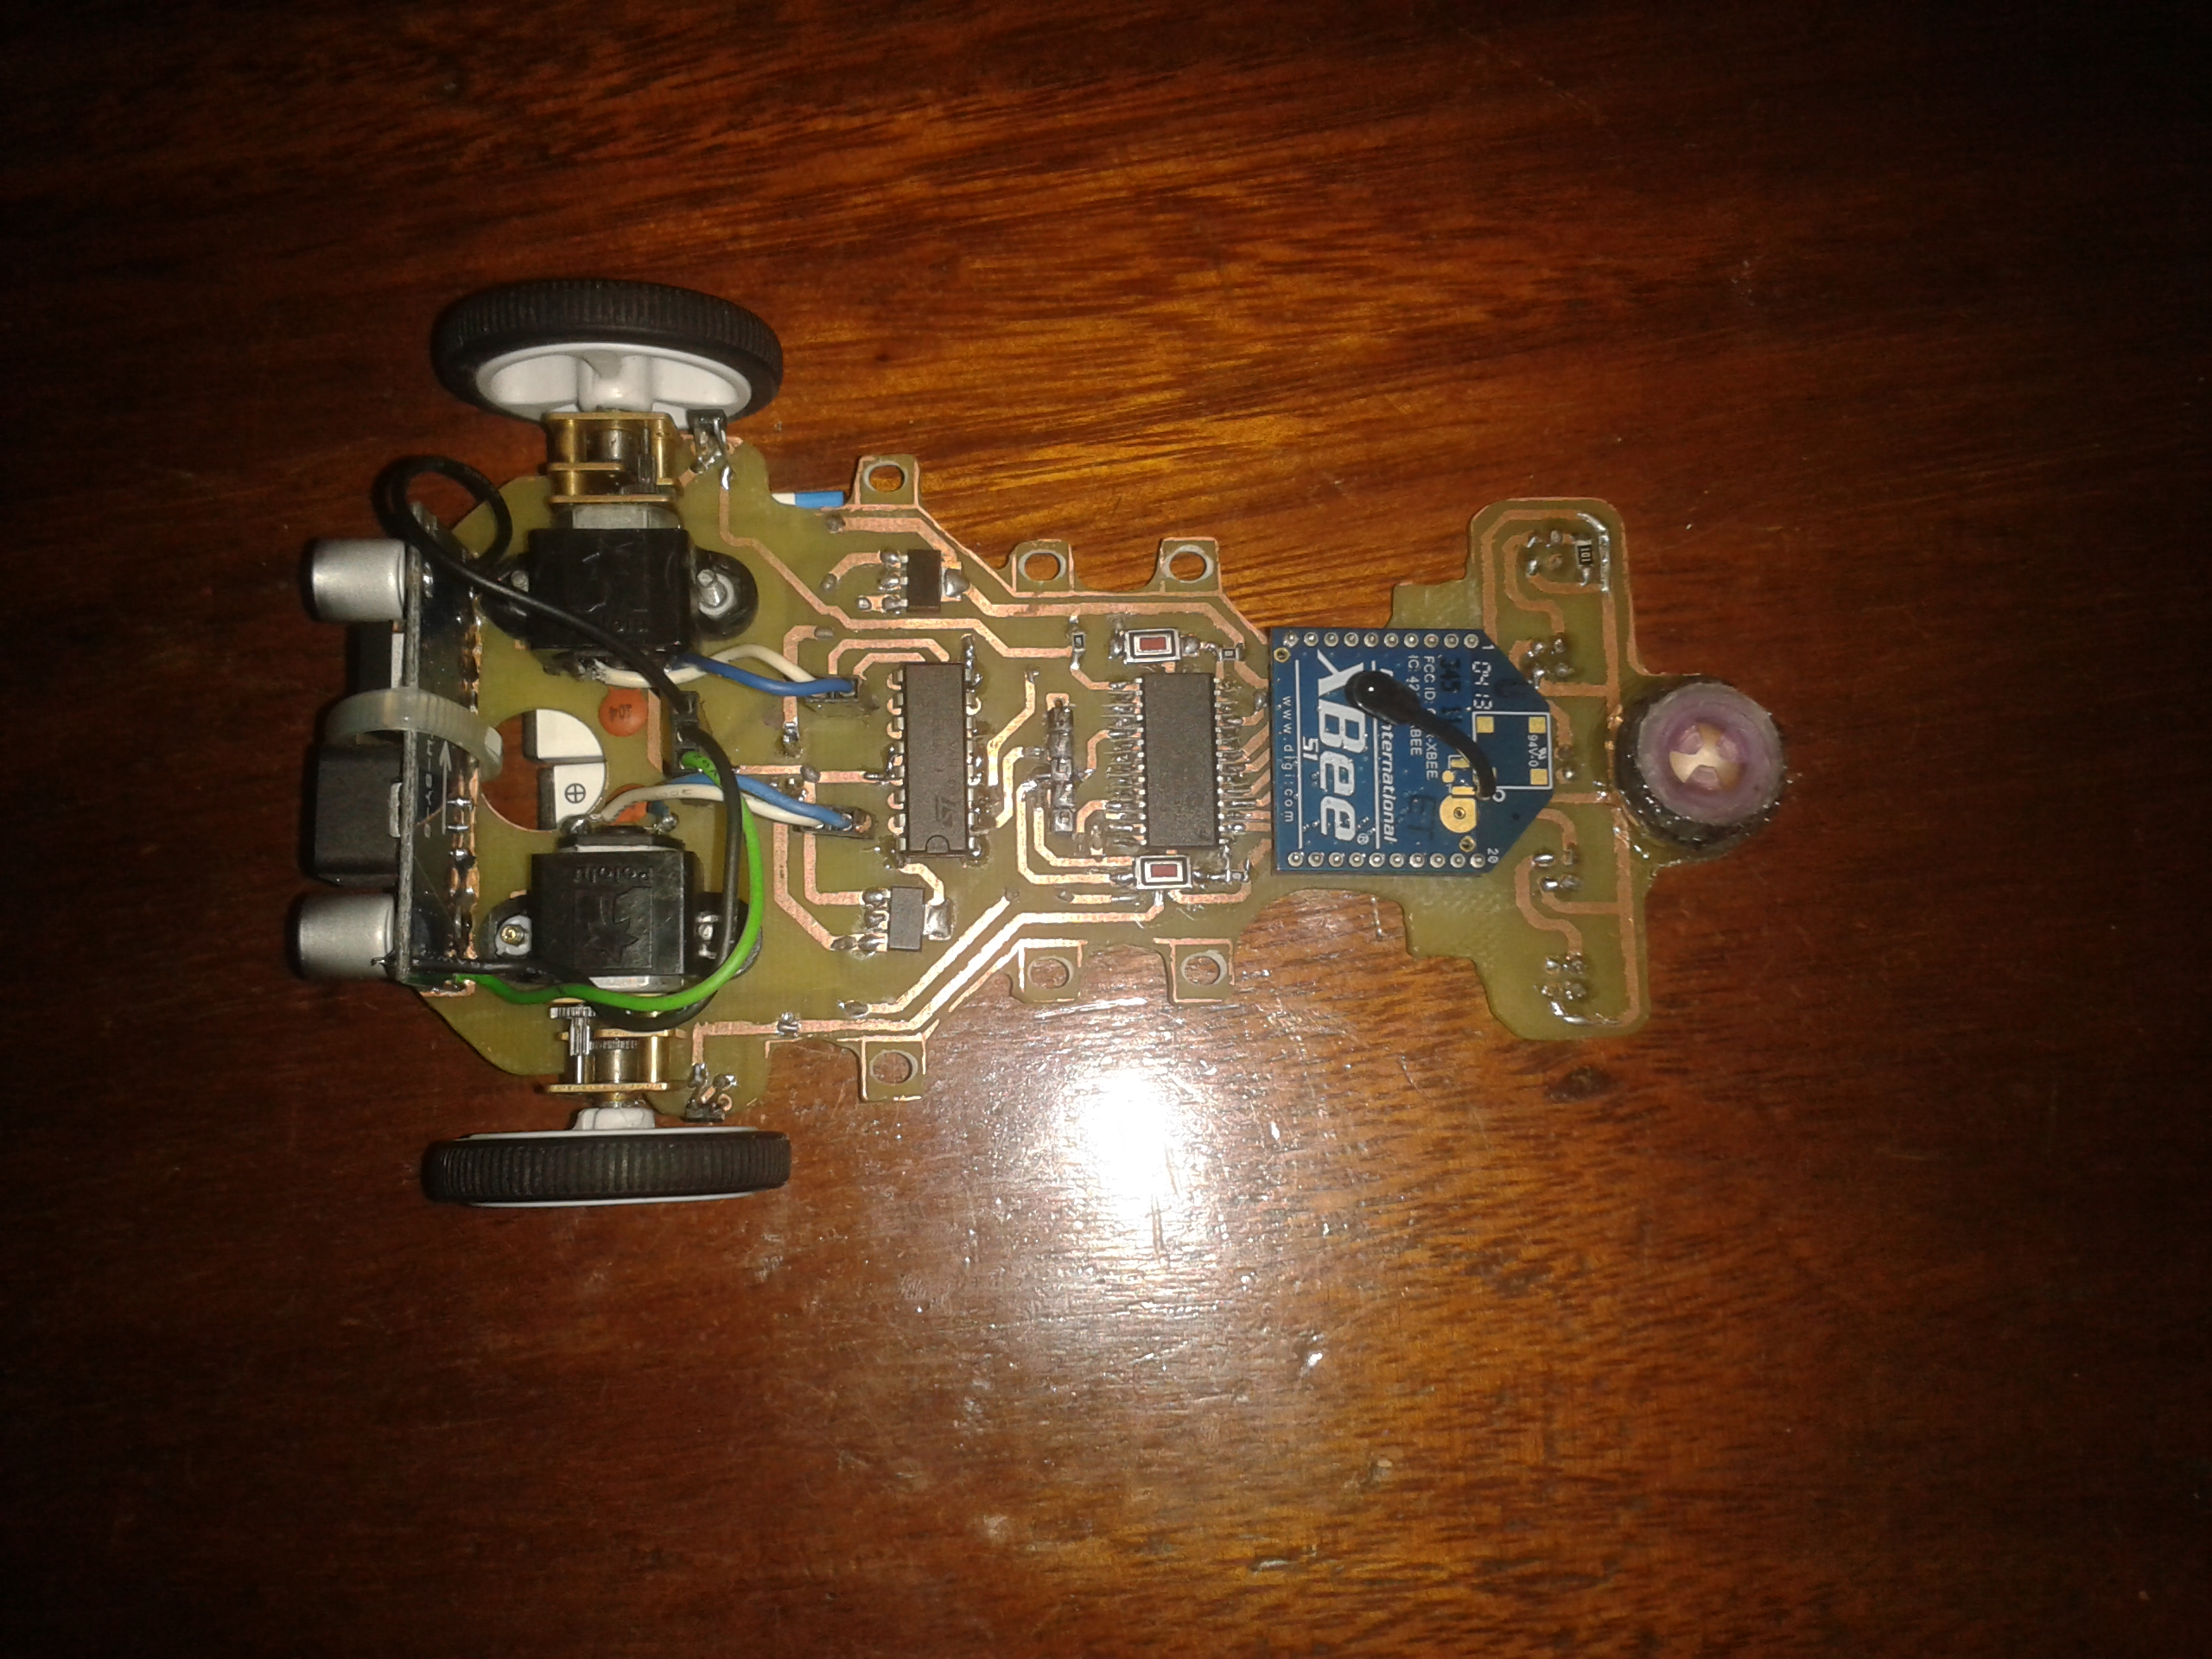 Proportional And Derivative Control Of A Line Follower Robot The Sensor Its Circuitry Purpose